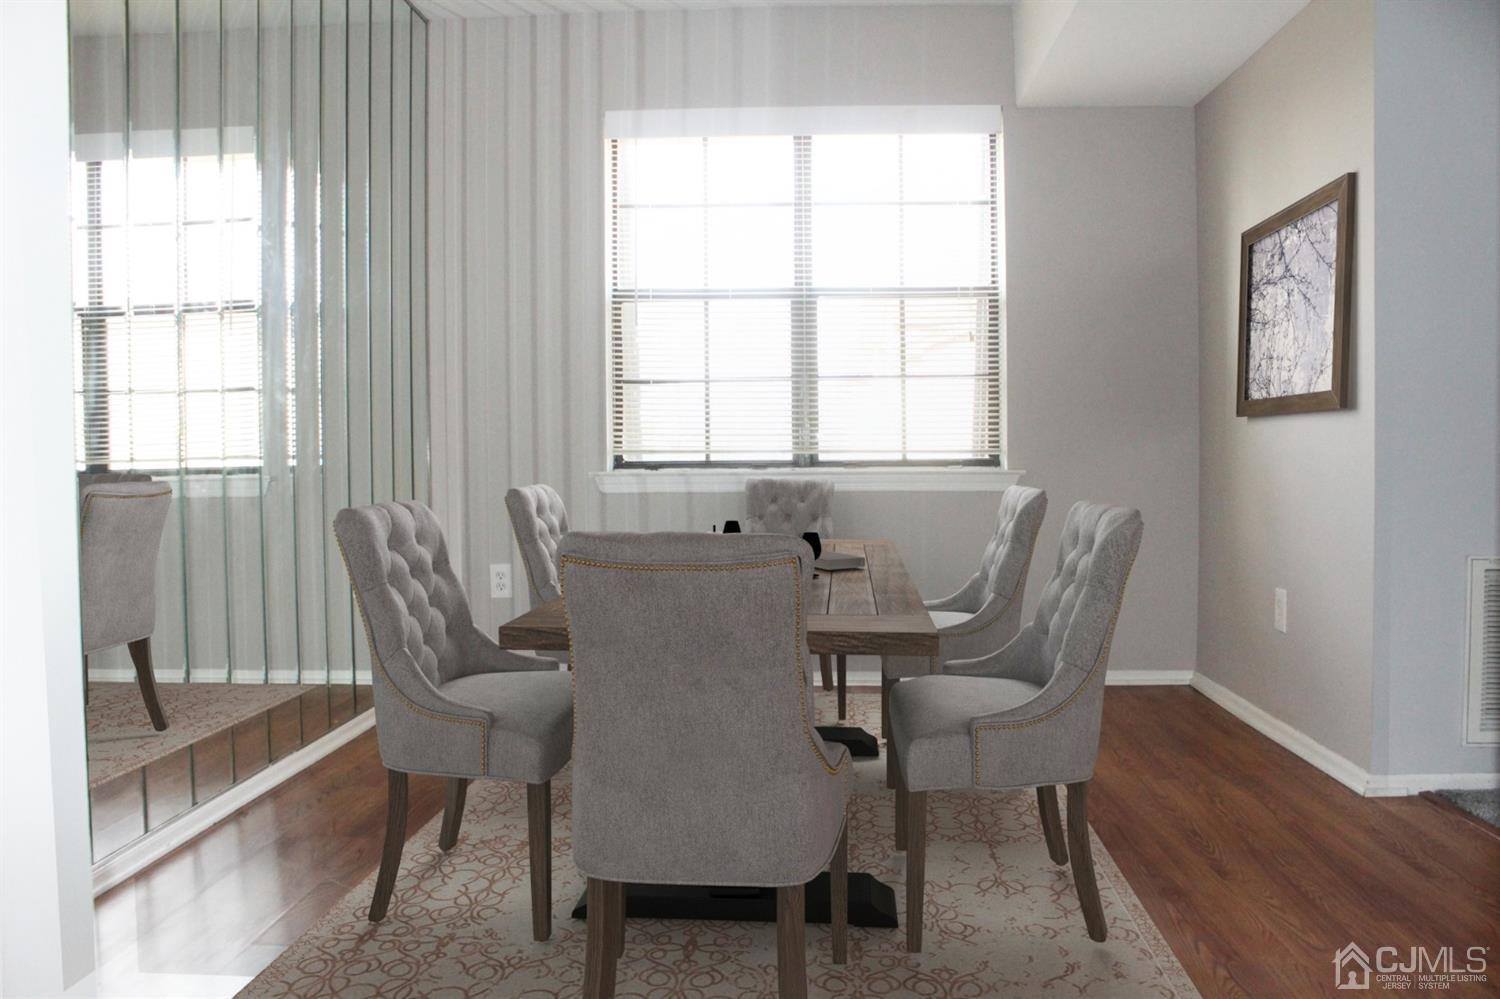 VIRTUAL STAGED WITH DINING FURNITURE.